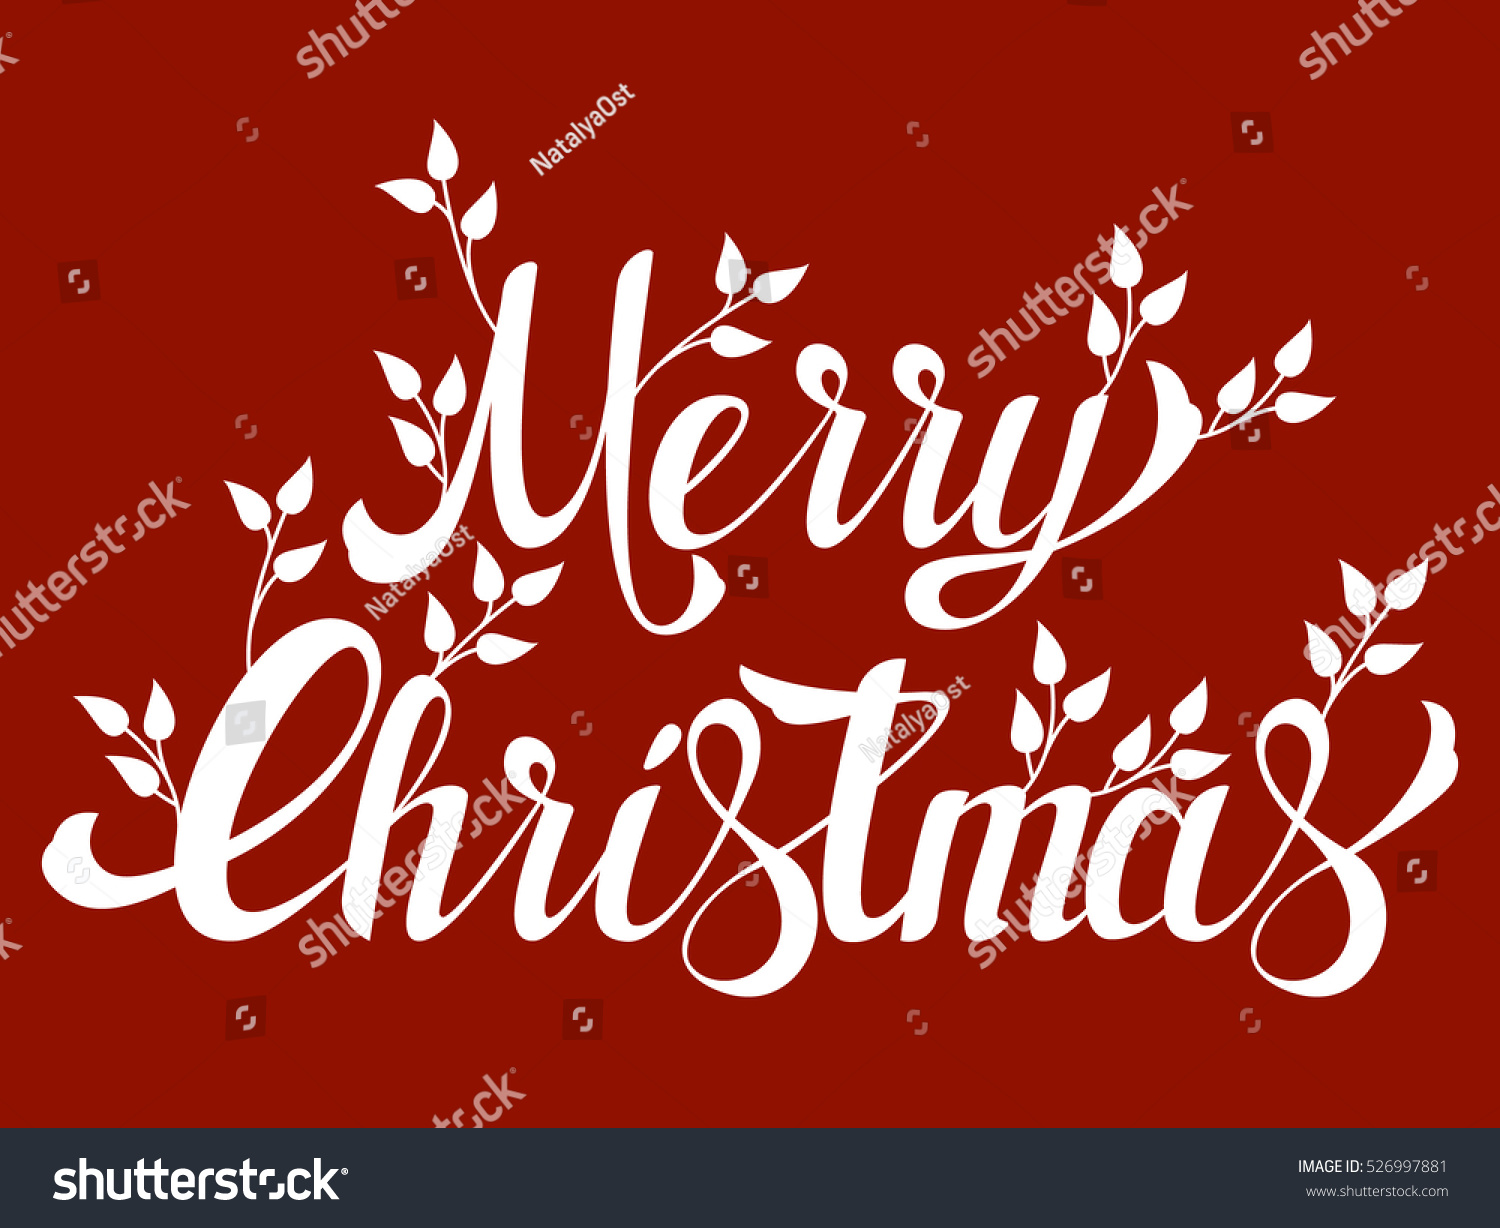 Lettering Words Merry Christmas Decorated Leaves Stock Vector ...